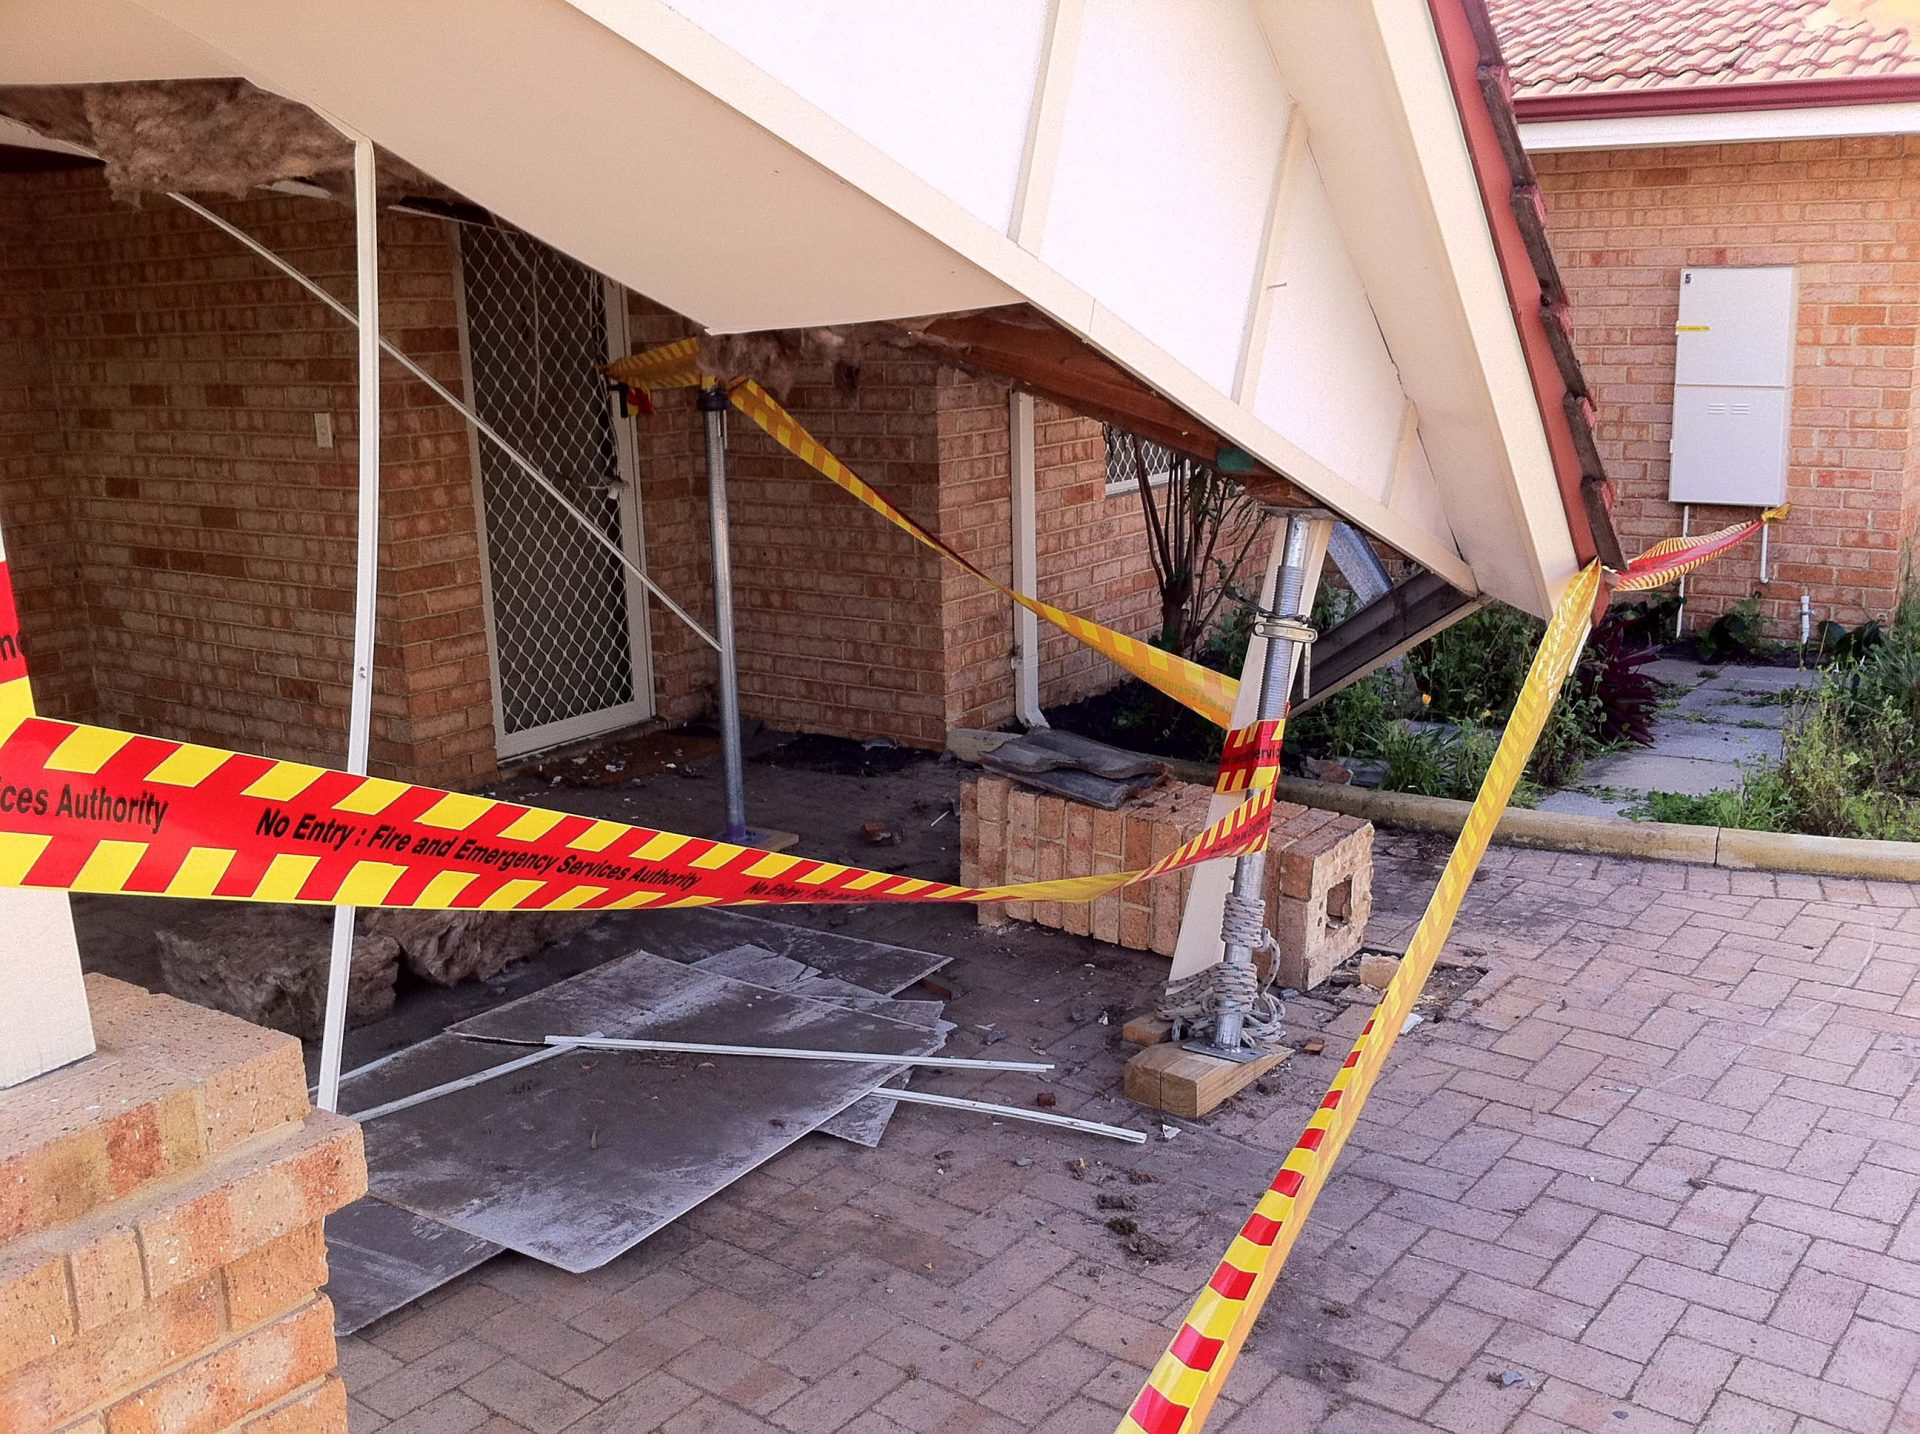 Roof and ceiling collapse.